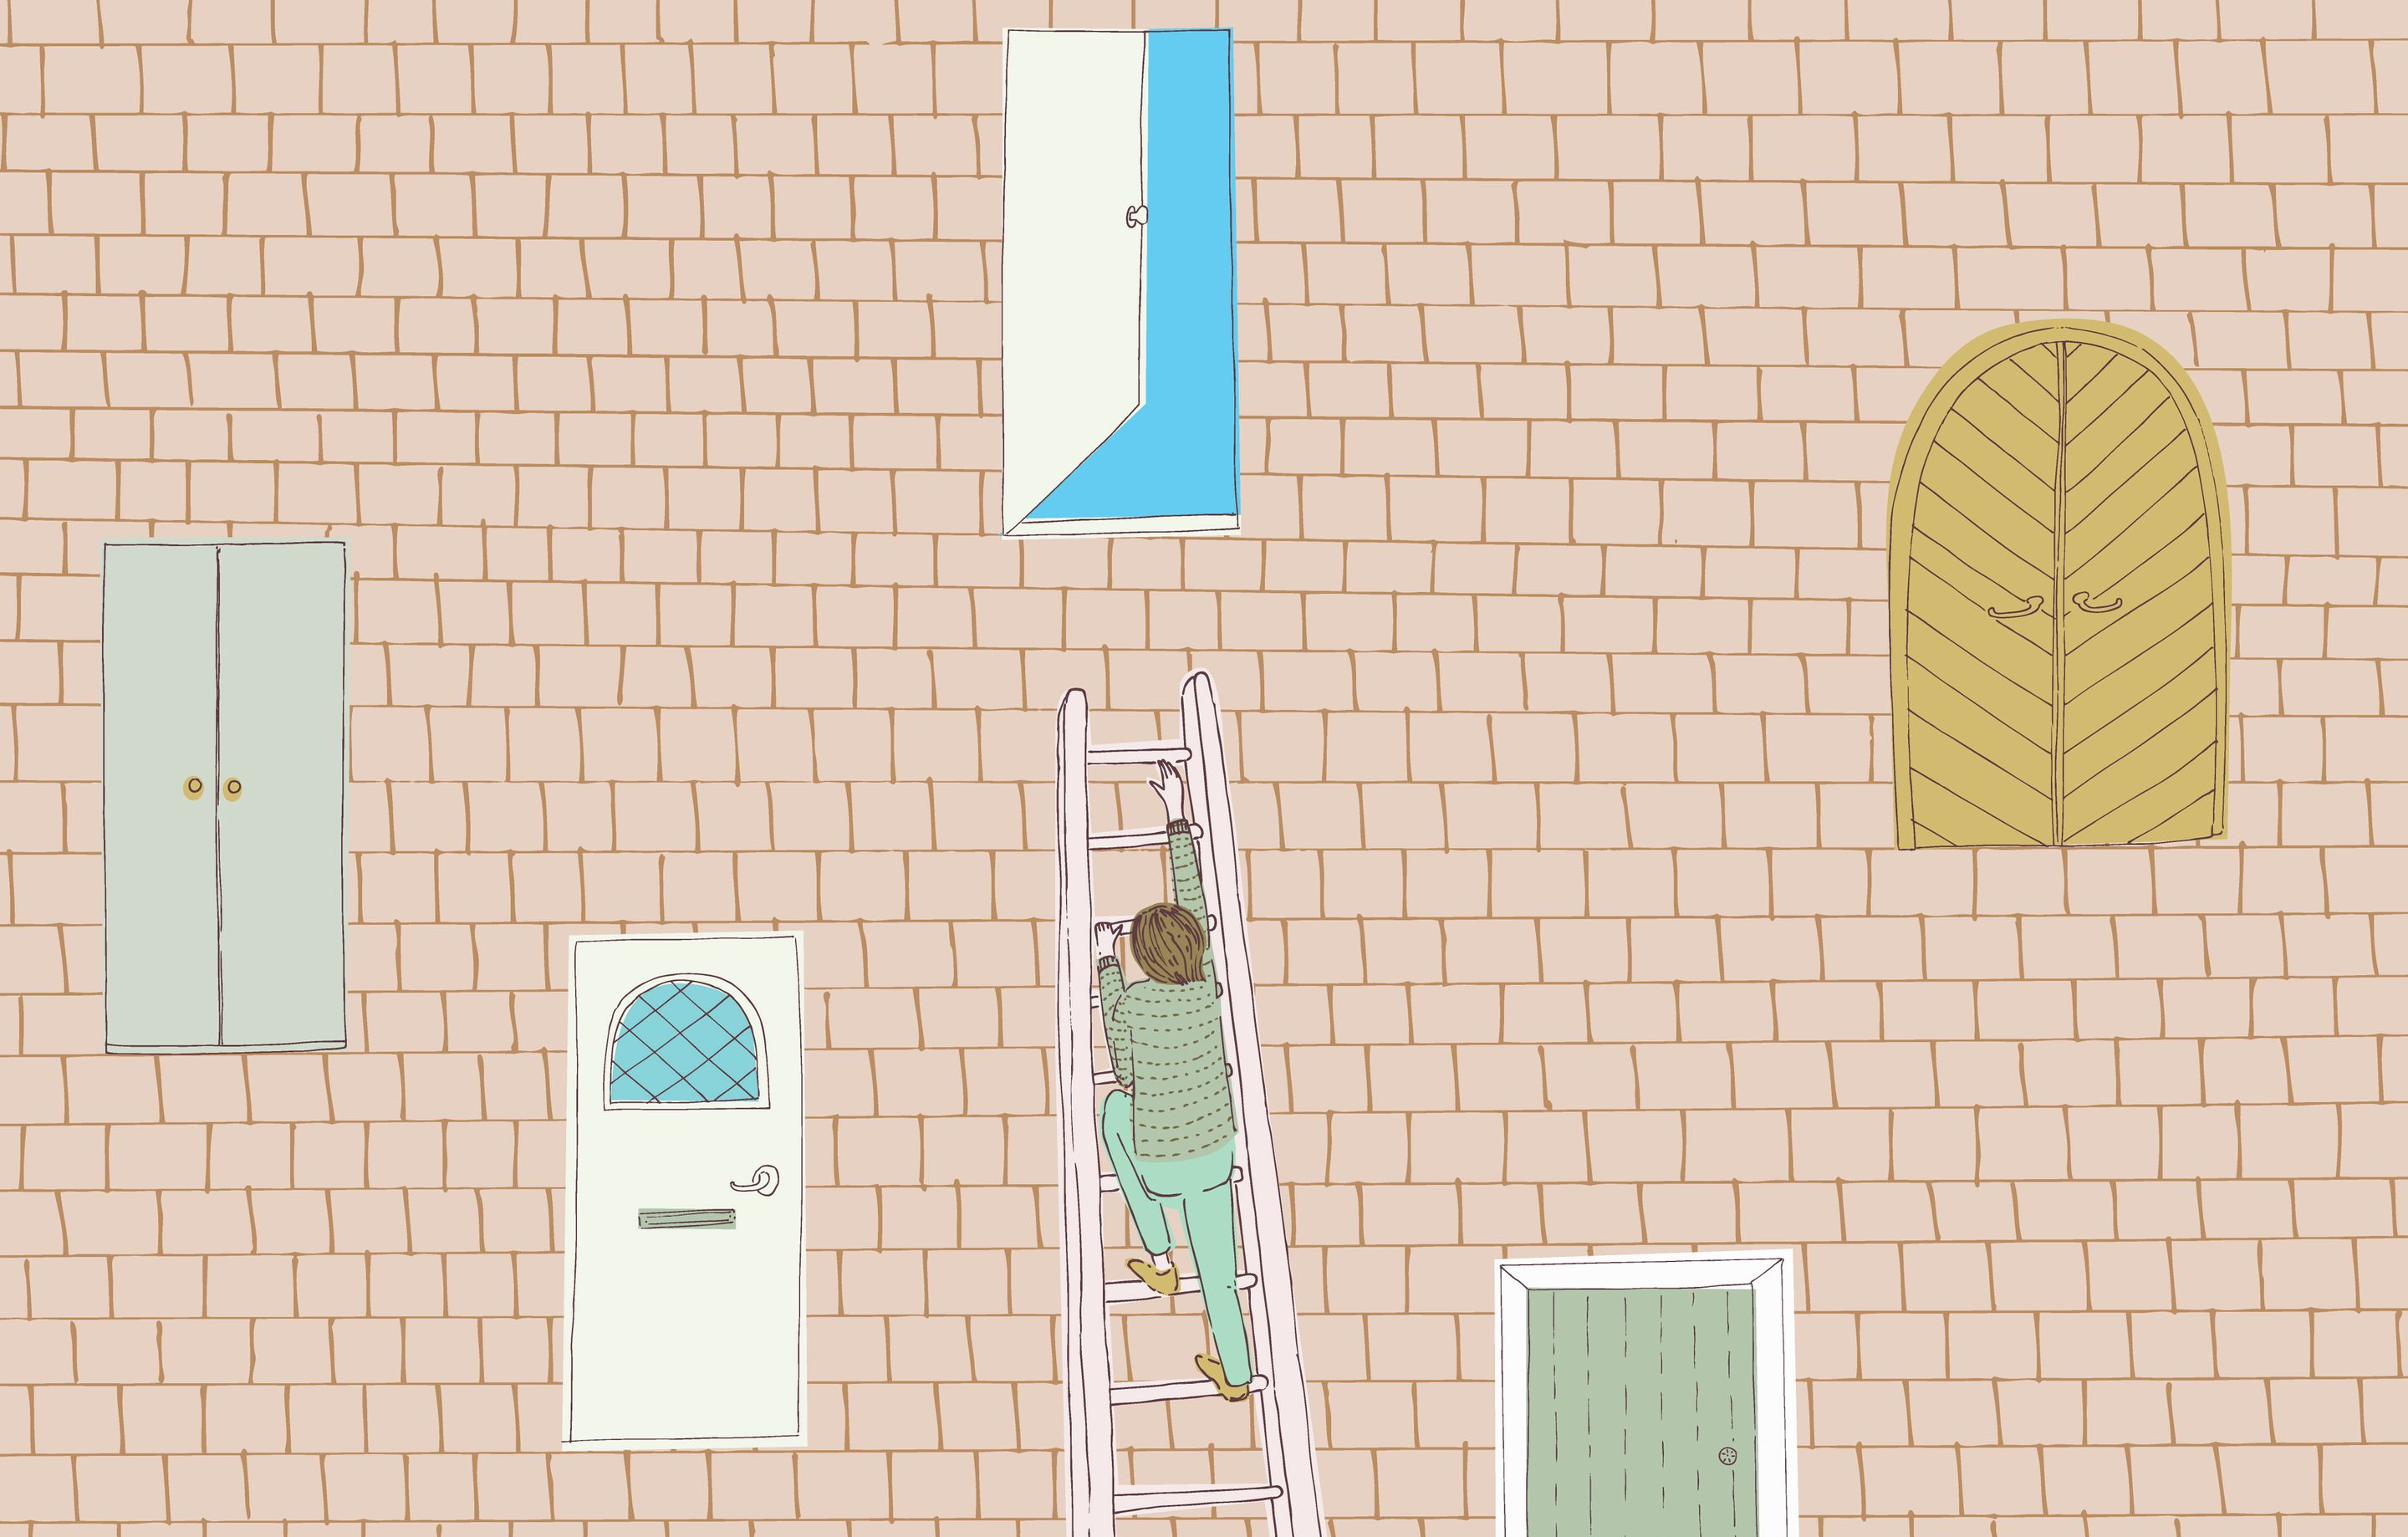 An illustration of a person climbing a ladder to an open door in a brick wall, representing personal growth and accomplishing goals